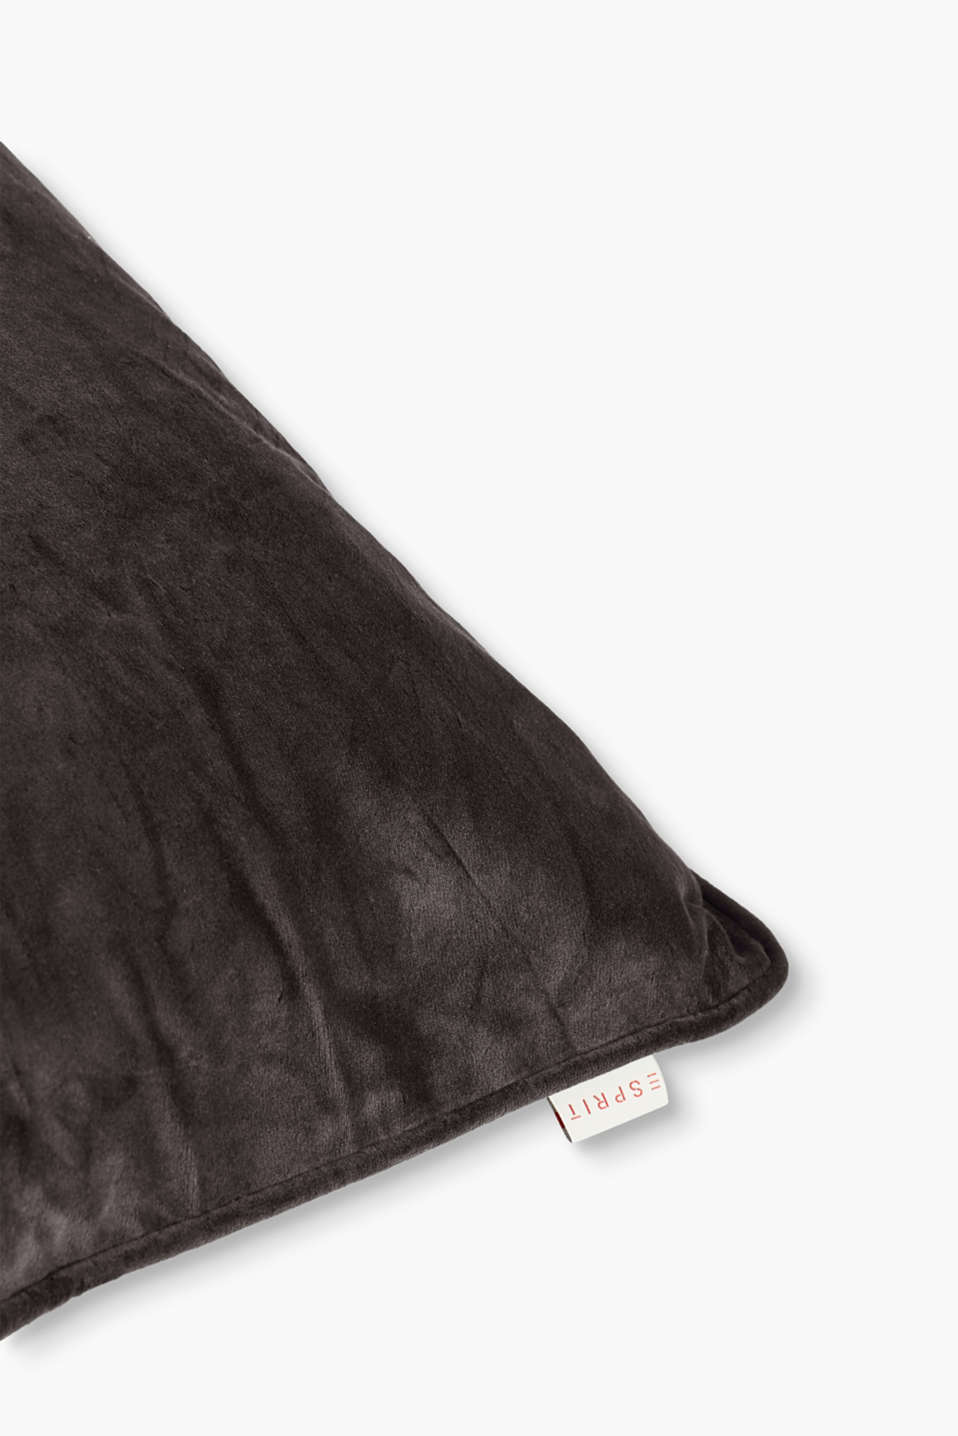 Cushion cover made of velvet, BROWN, detail image number 1